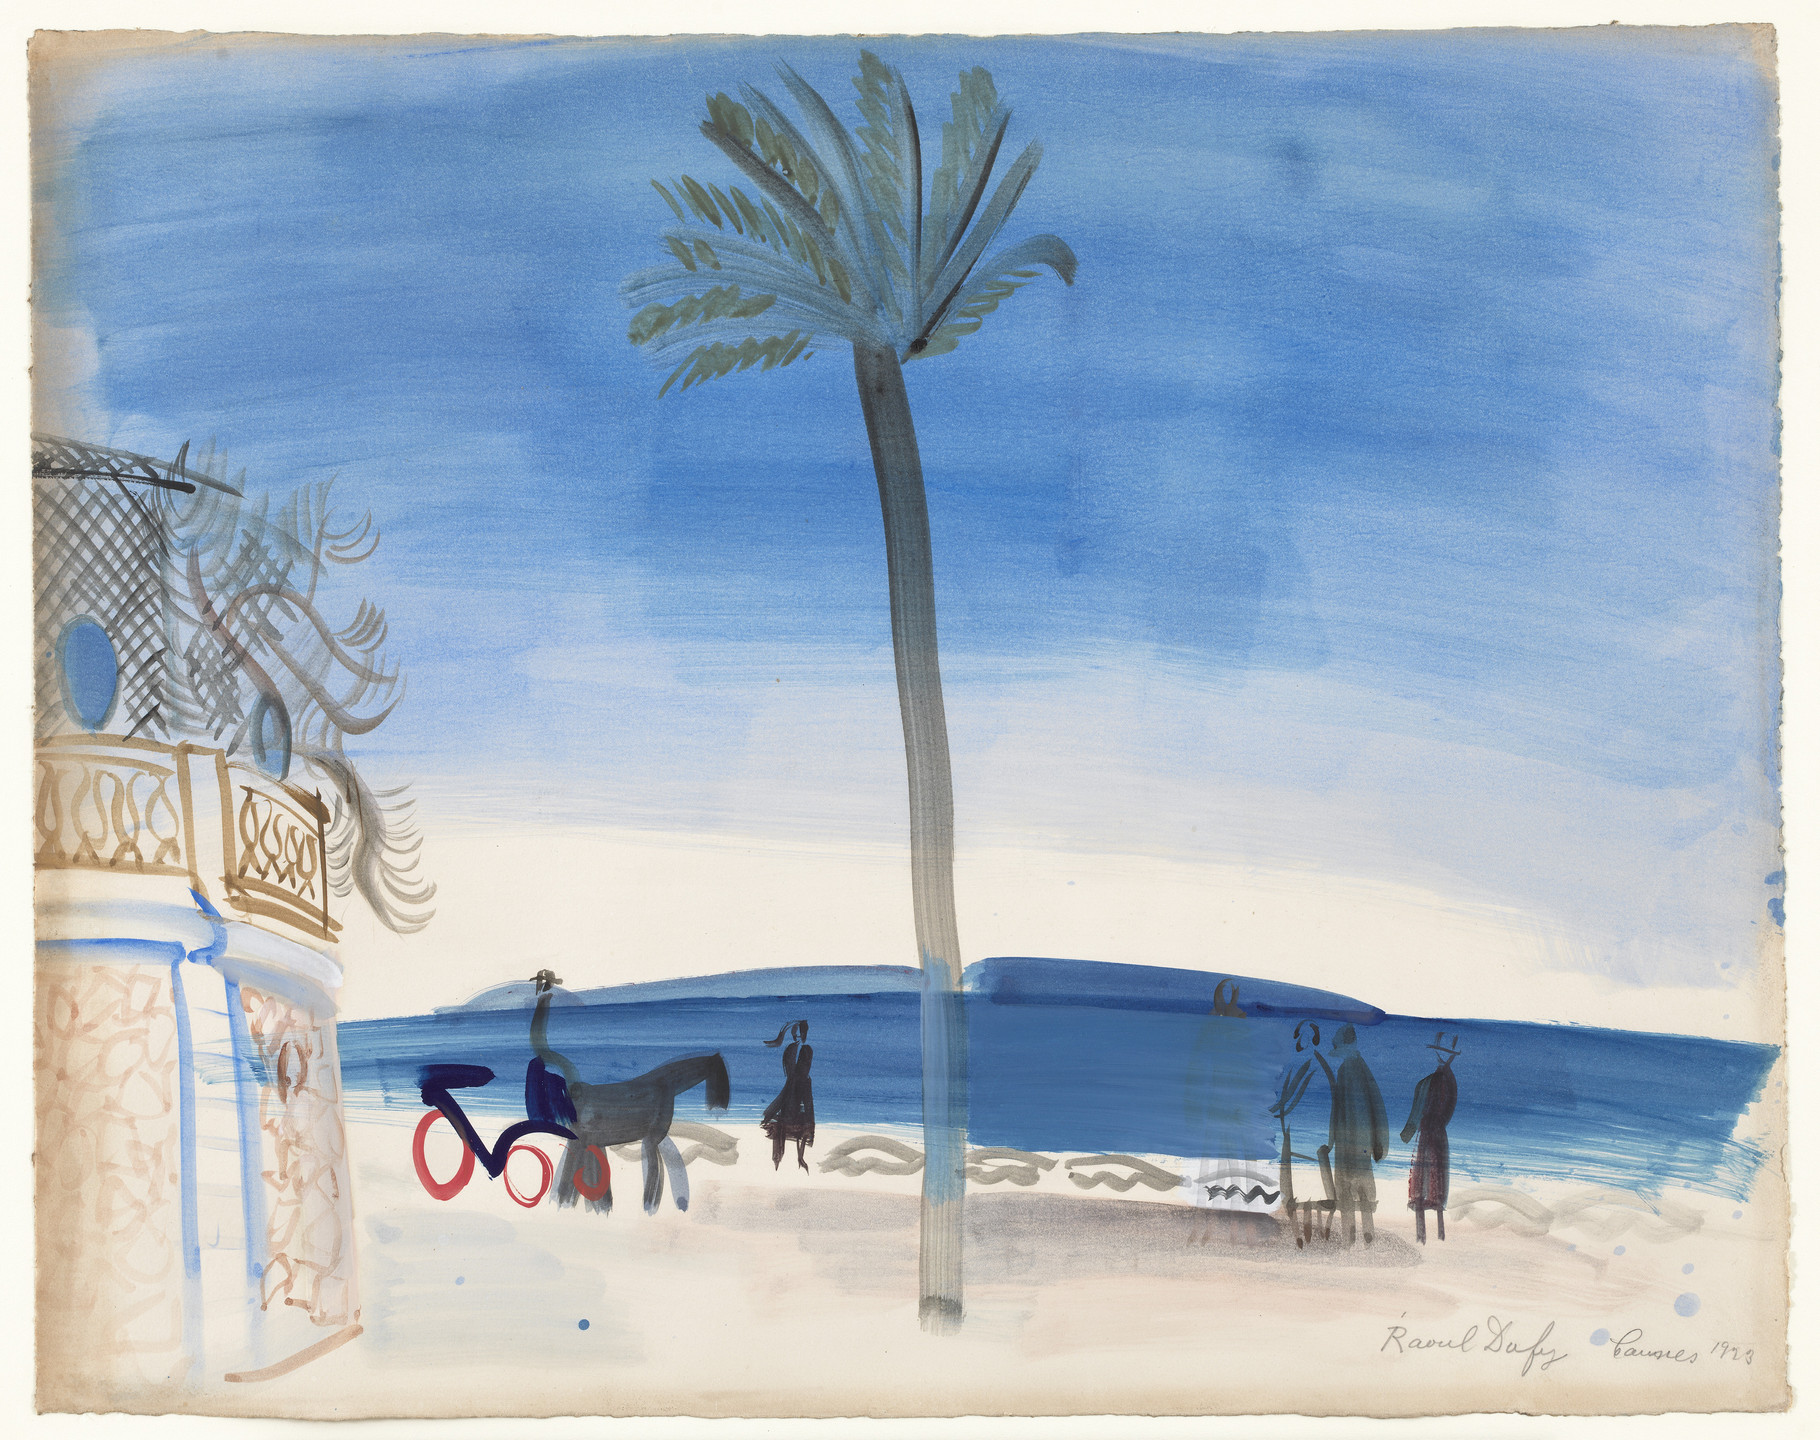 Raoul Dufy. The Palm. 1923